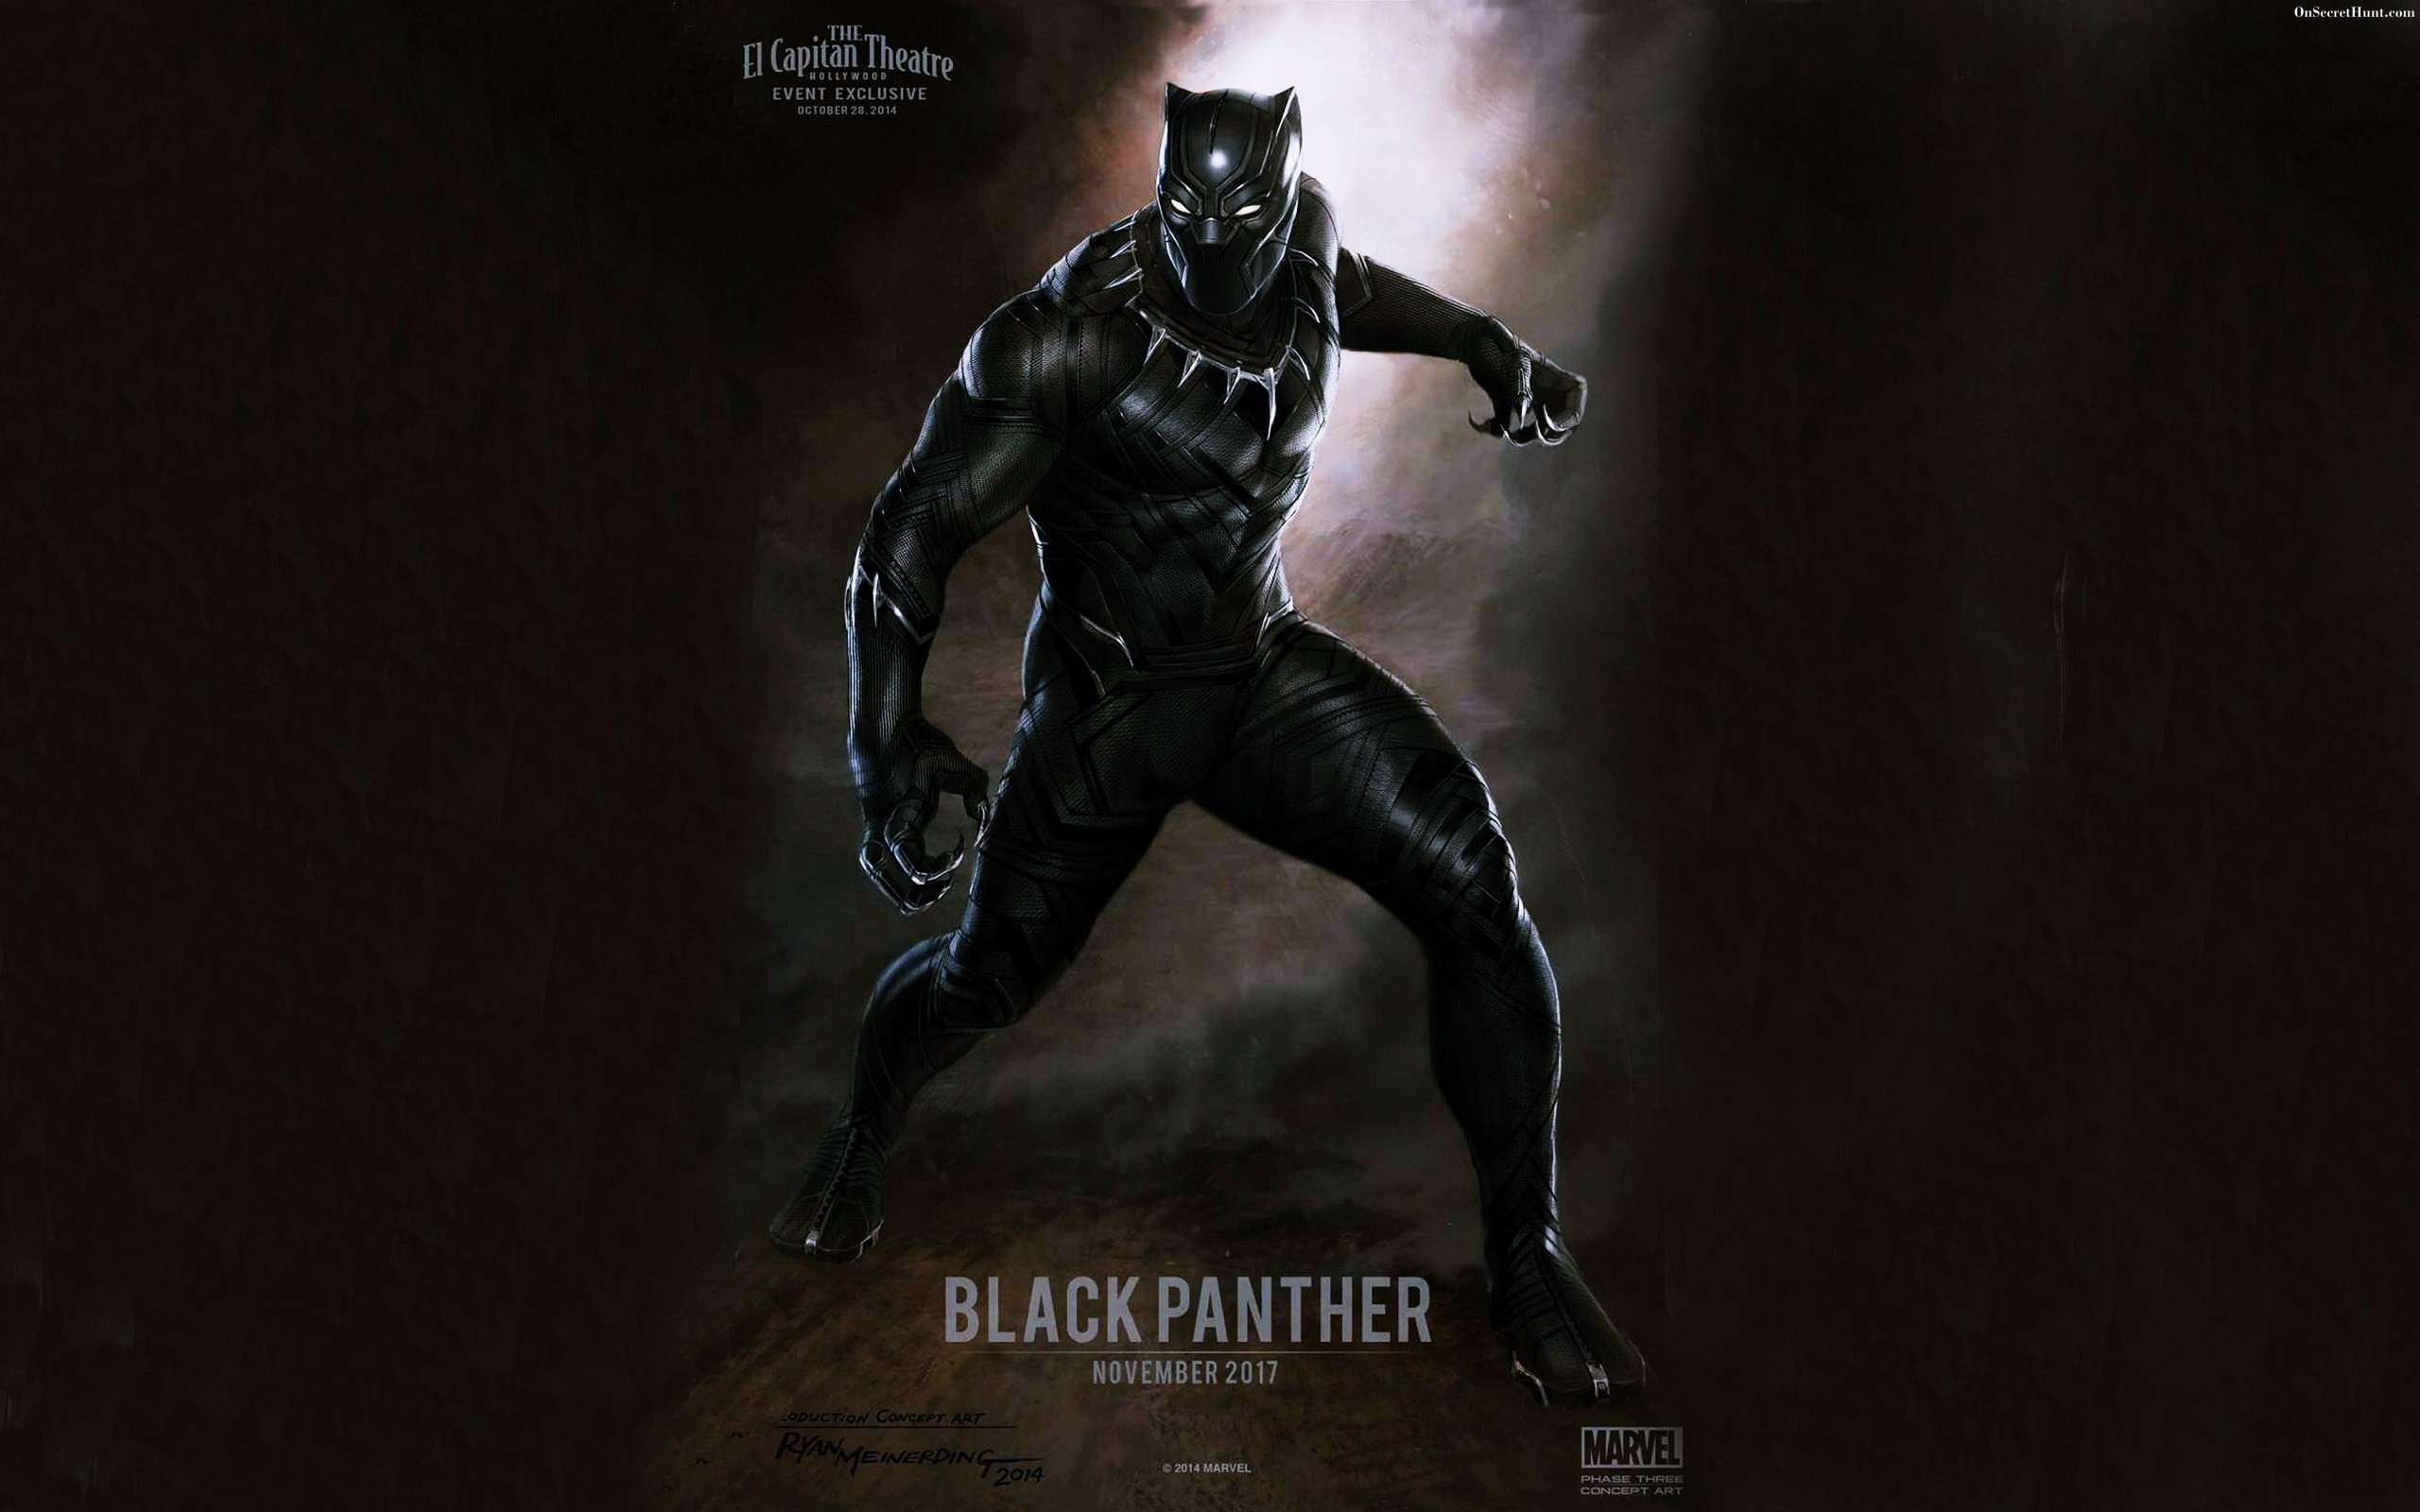 Marvel Black Panther High Quality Wallpaper » Great Wallpaper HD